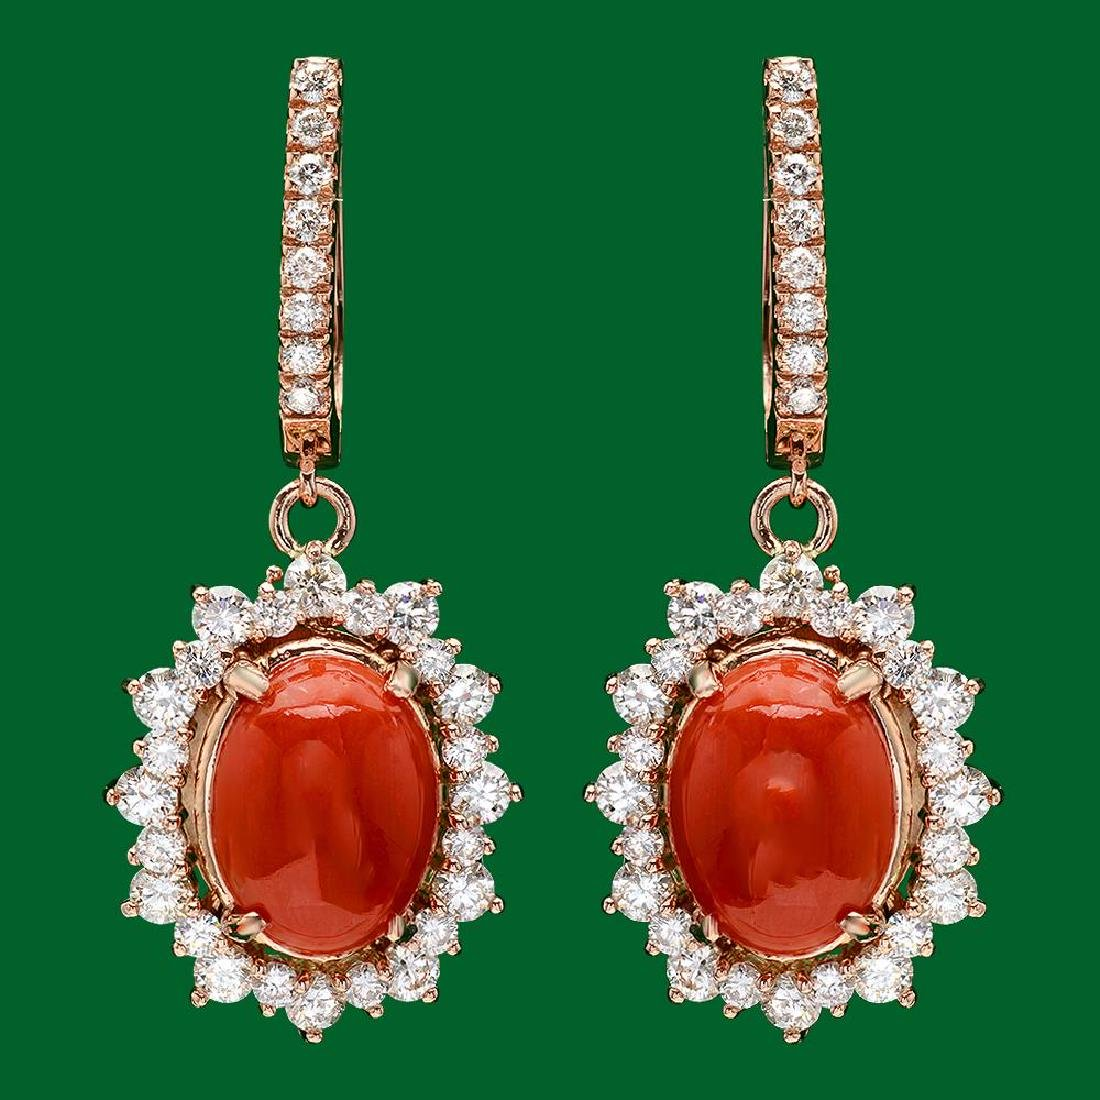 14k Gold 6.11ct Coral 2.55ct Diamond Earrings